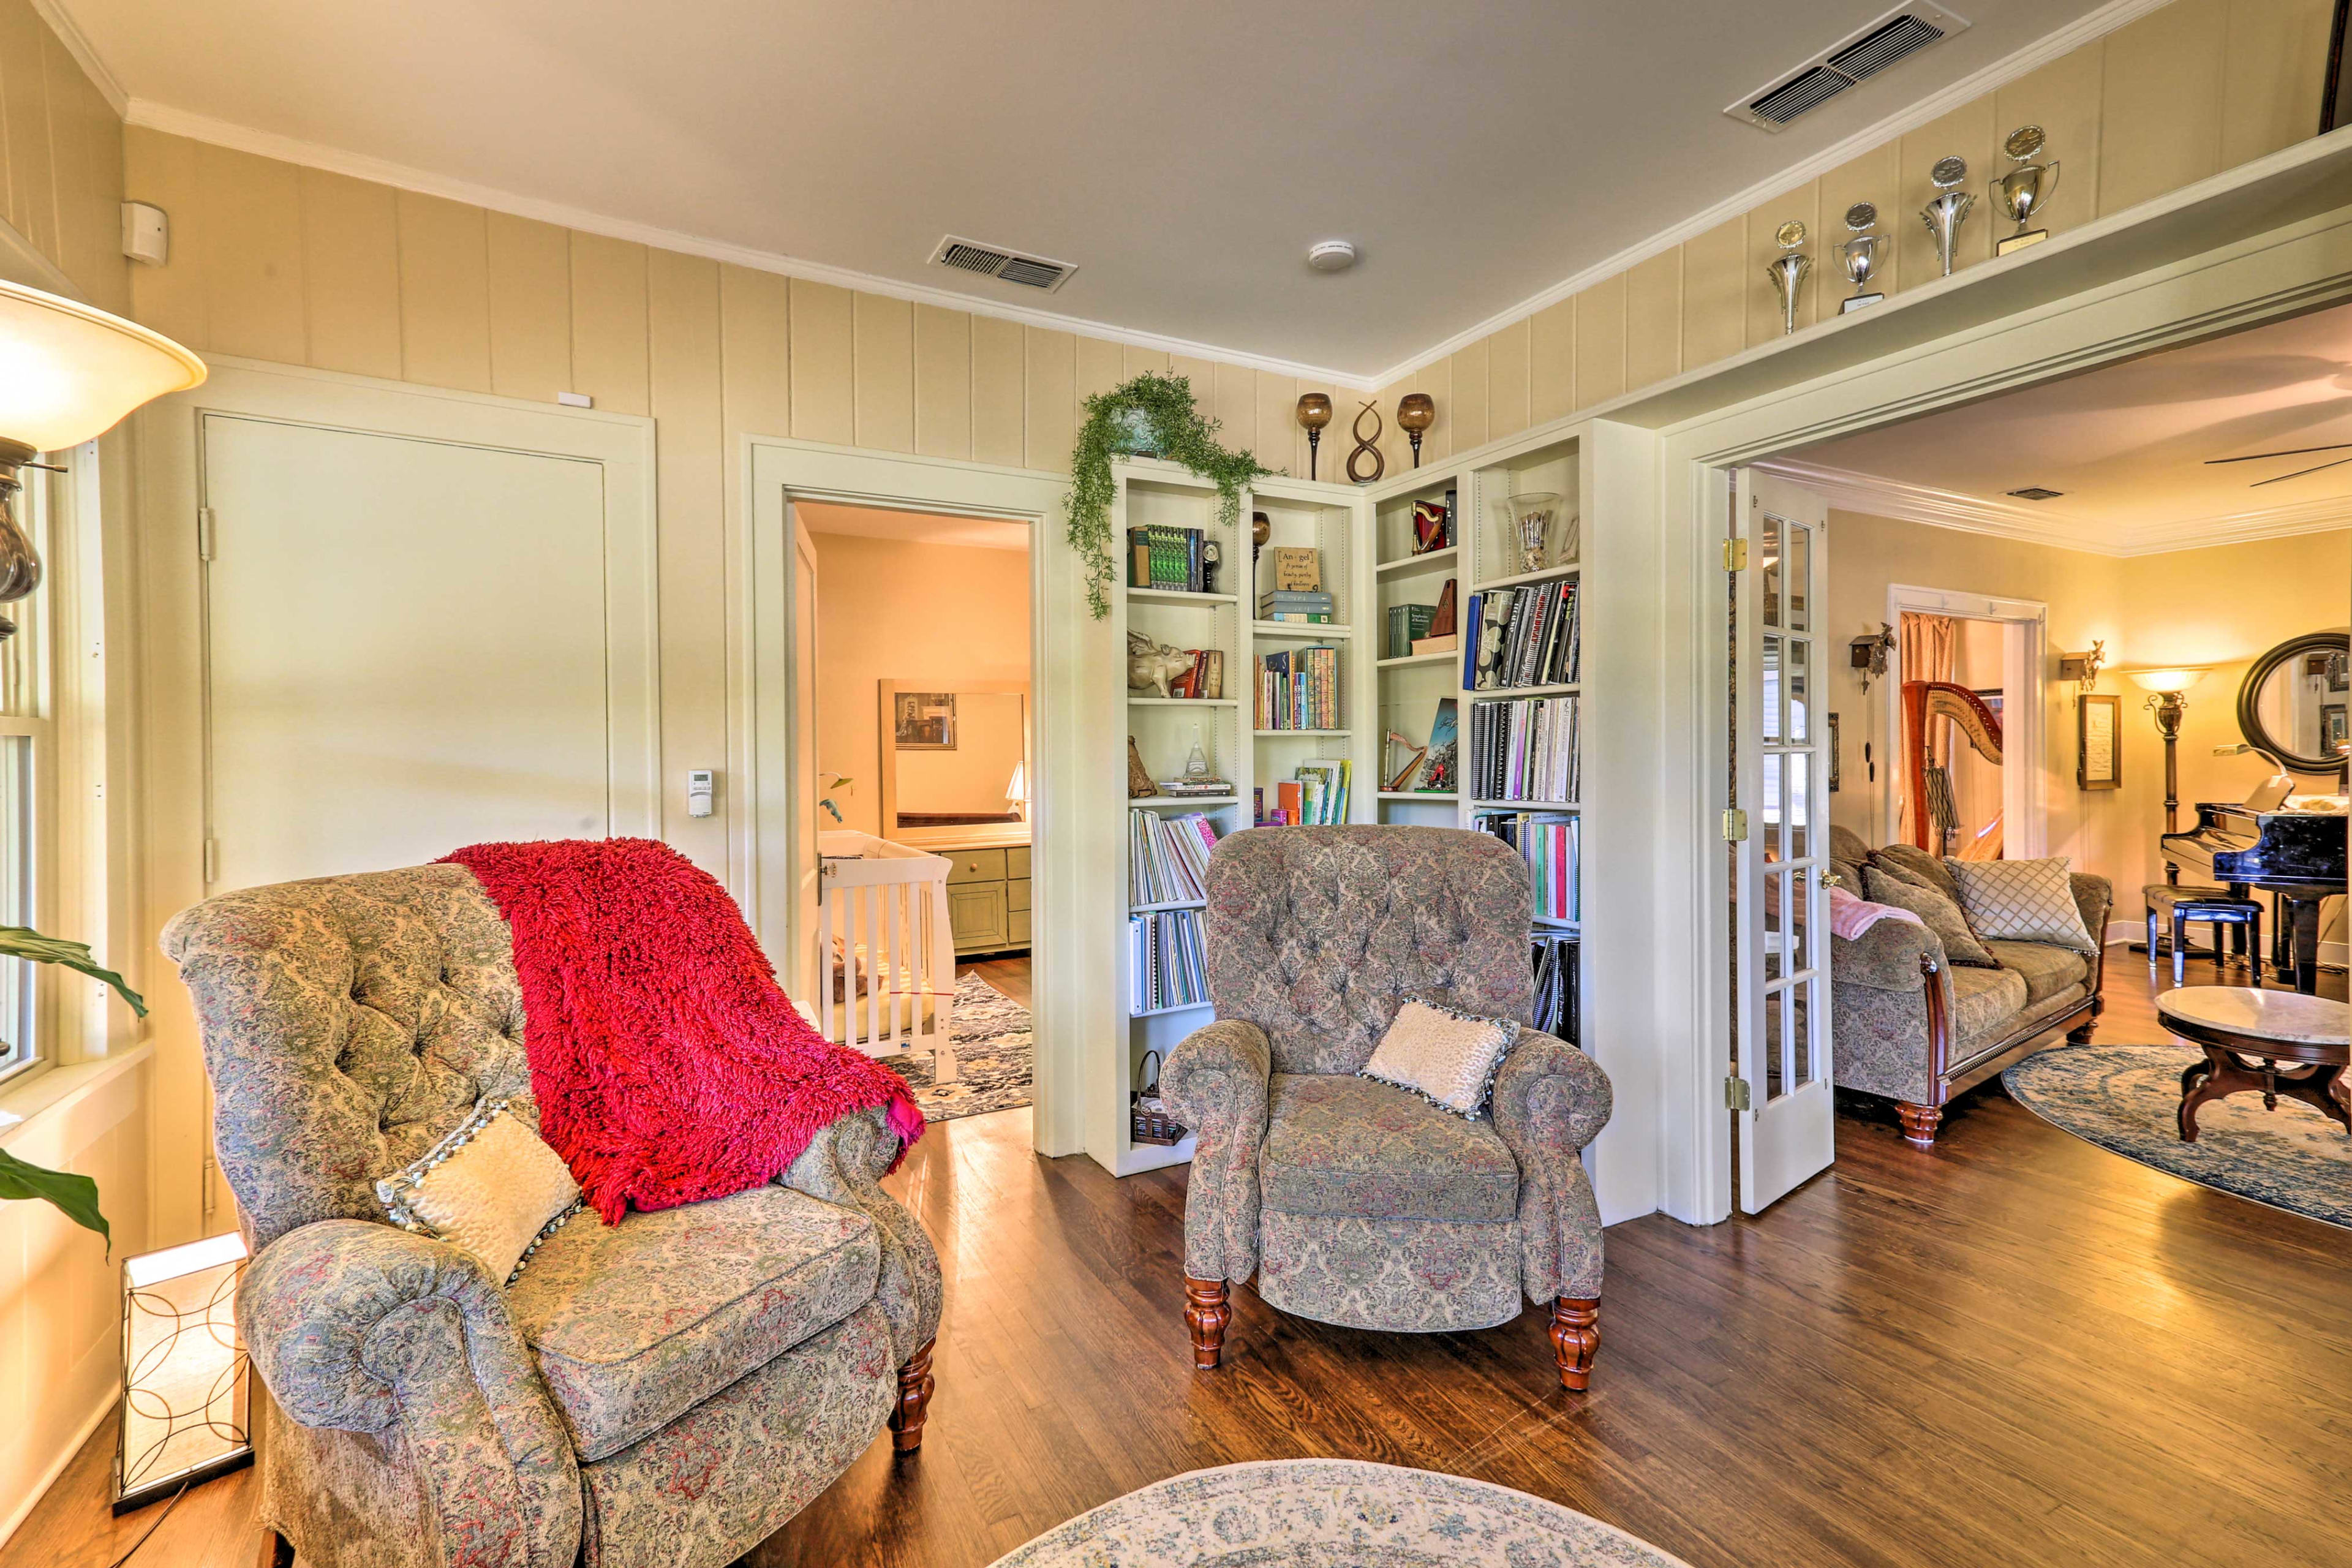 Ample seating and living space is ideal for hosting a get-together.